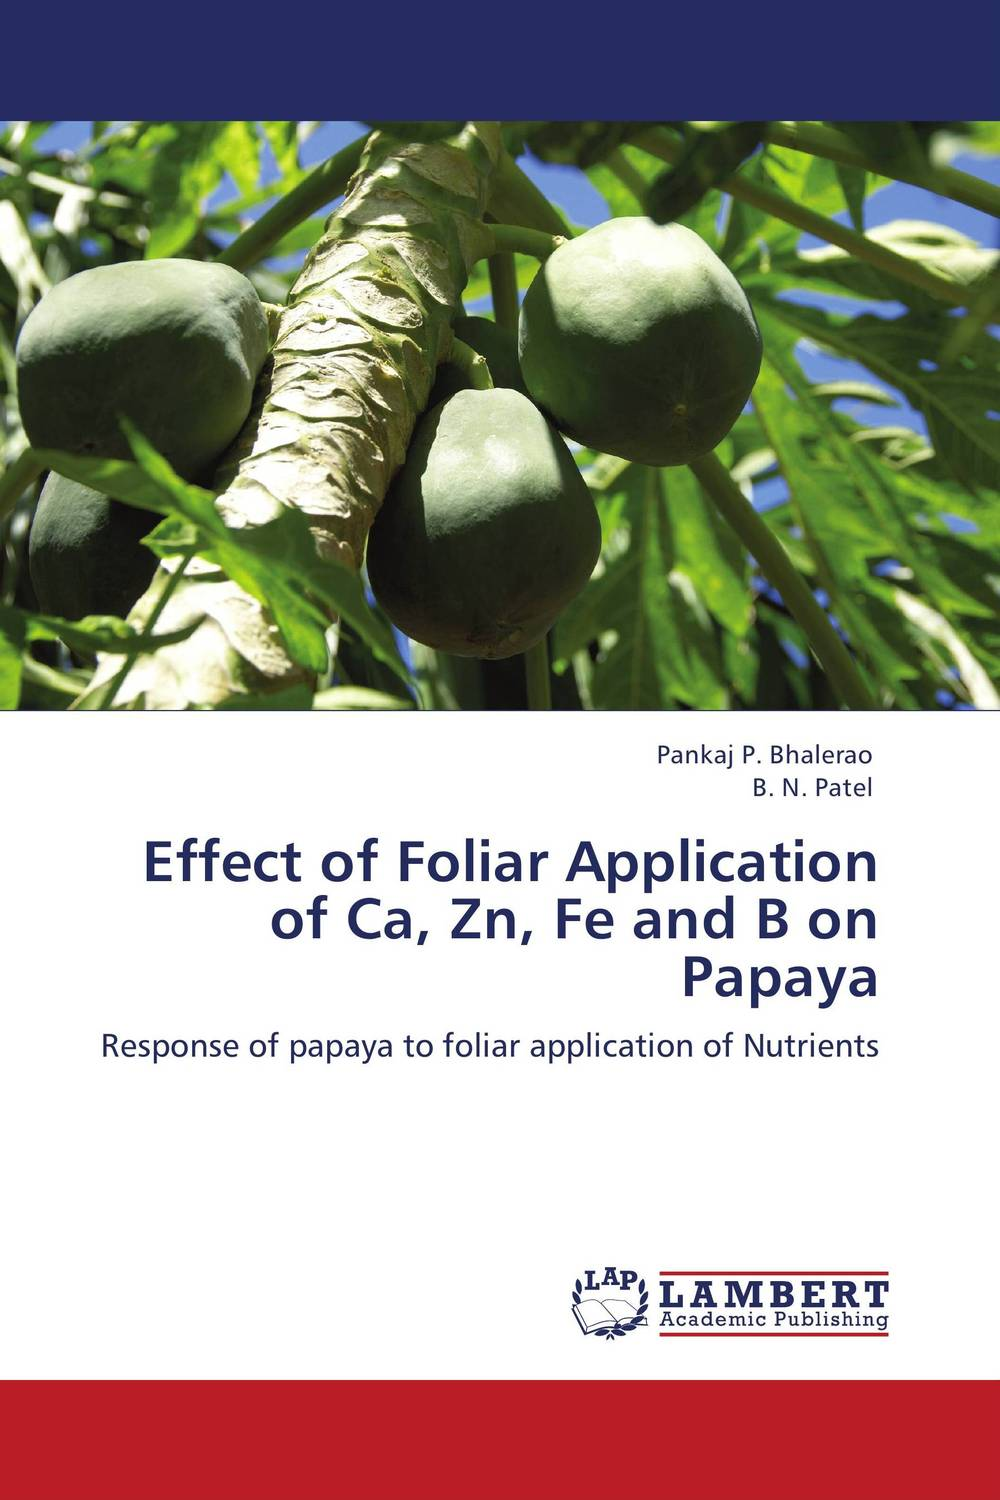 Effect of Foliar Application of Ca, Zn, Fe and B on Papaya saeid navid effect of papaya leaf meal and vitamin d3 on meat quality